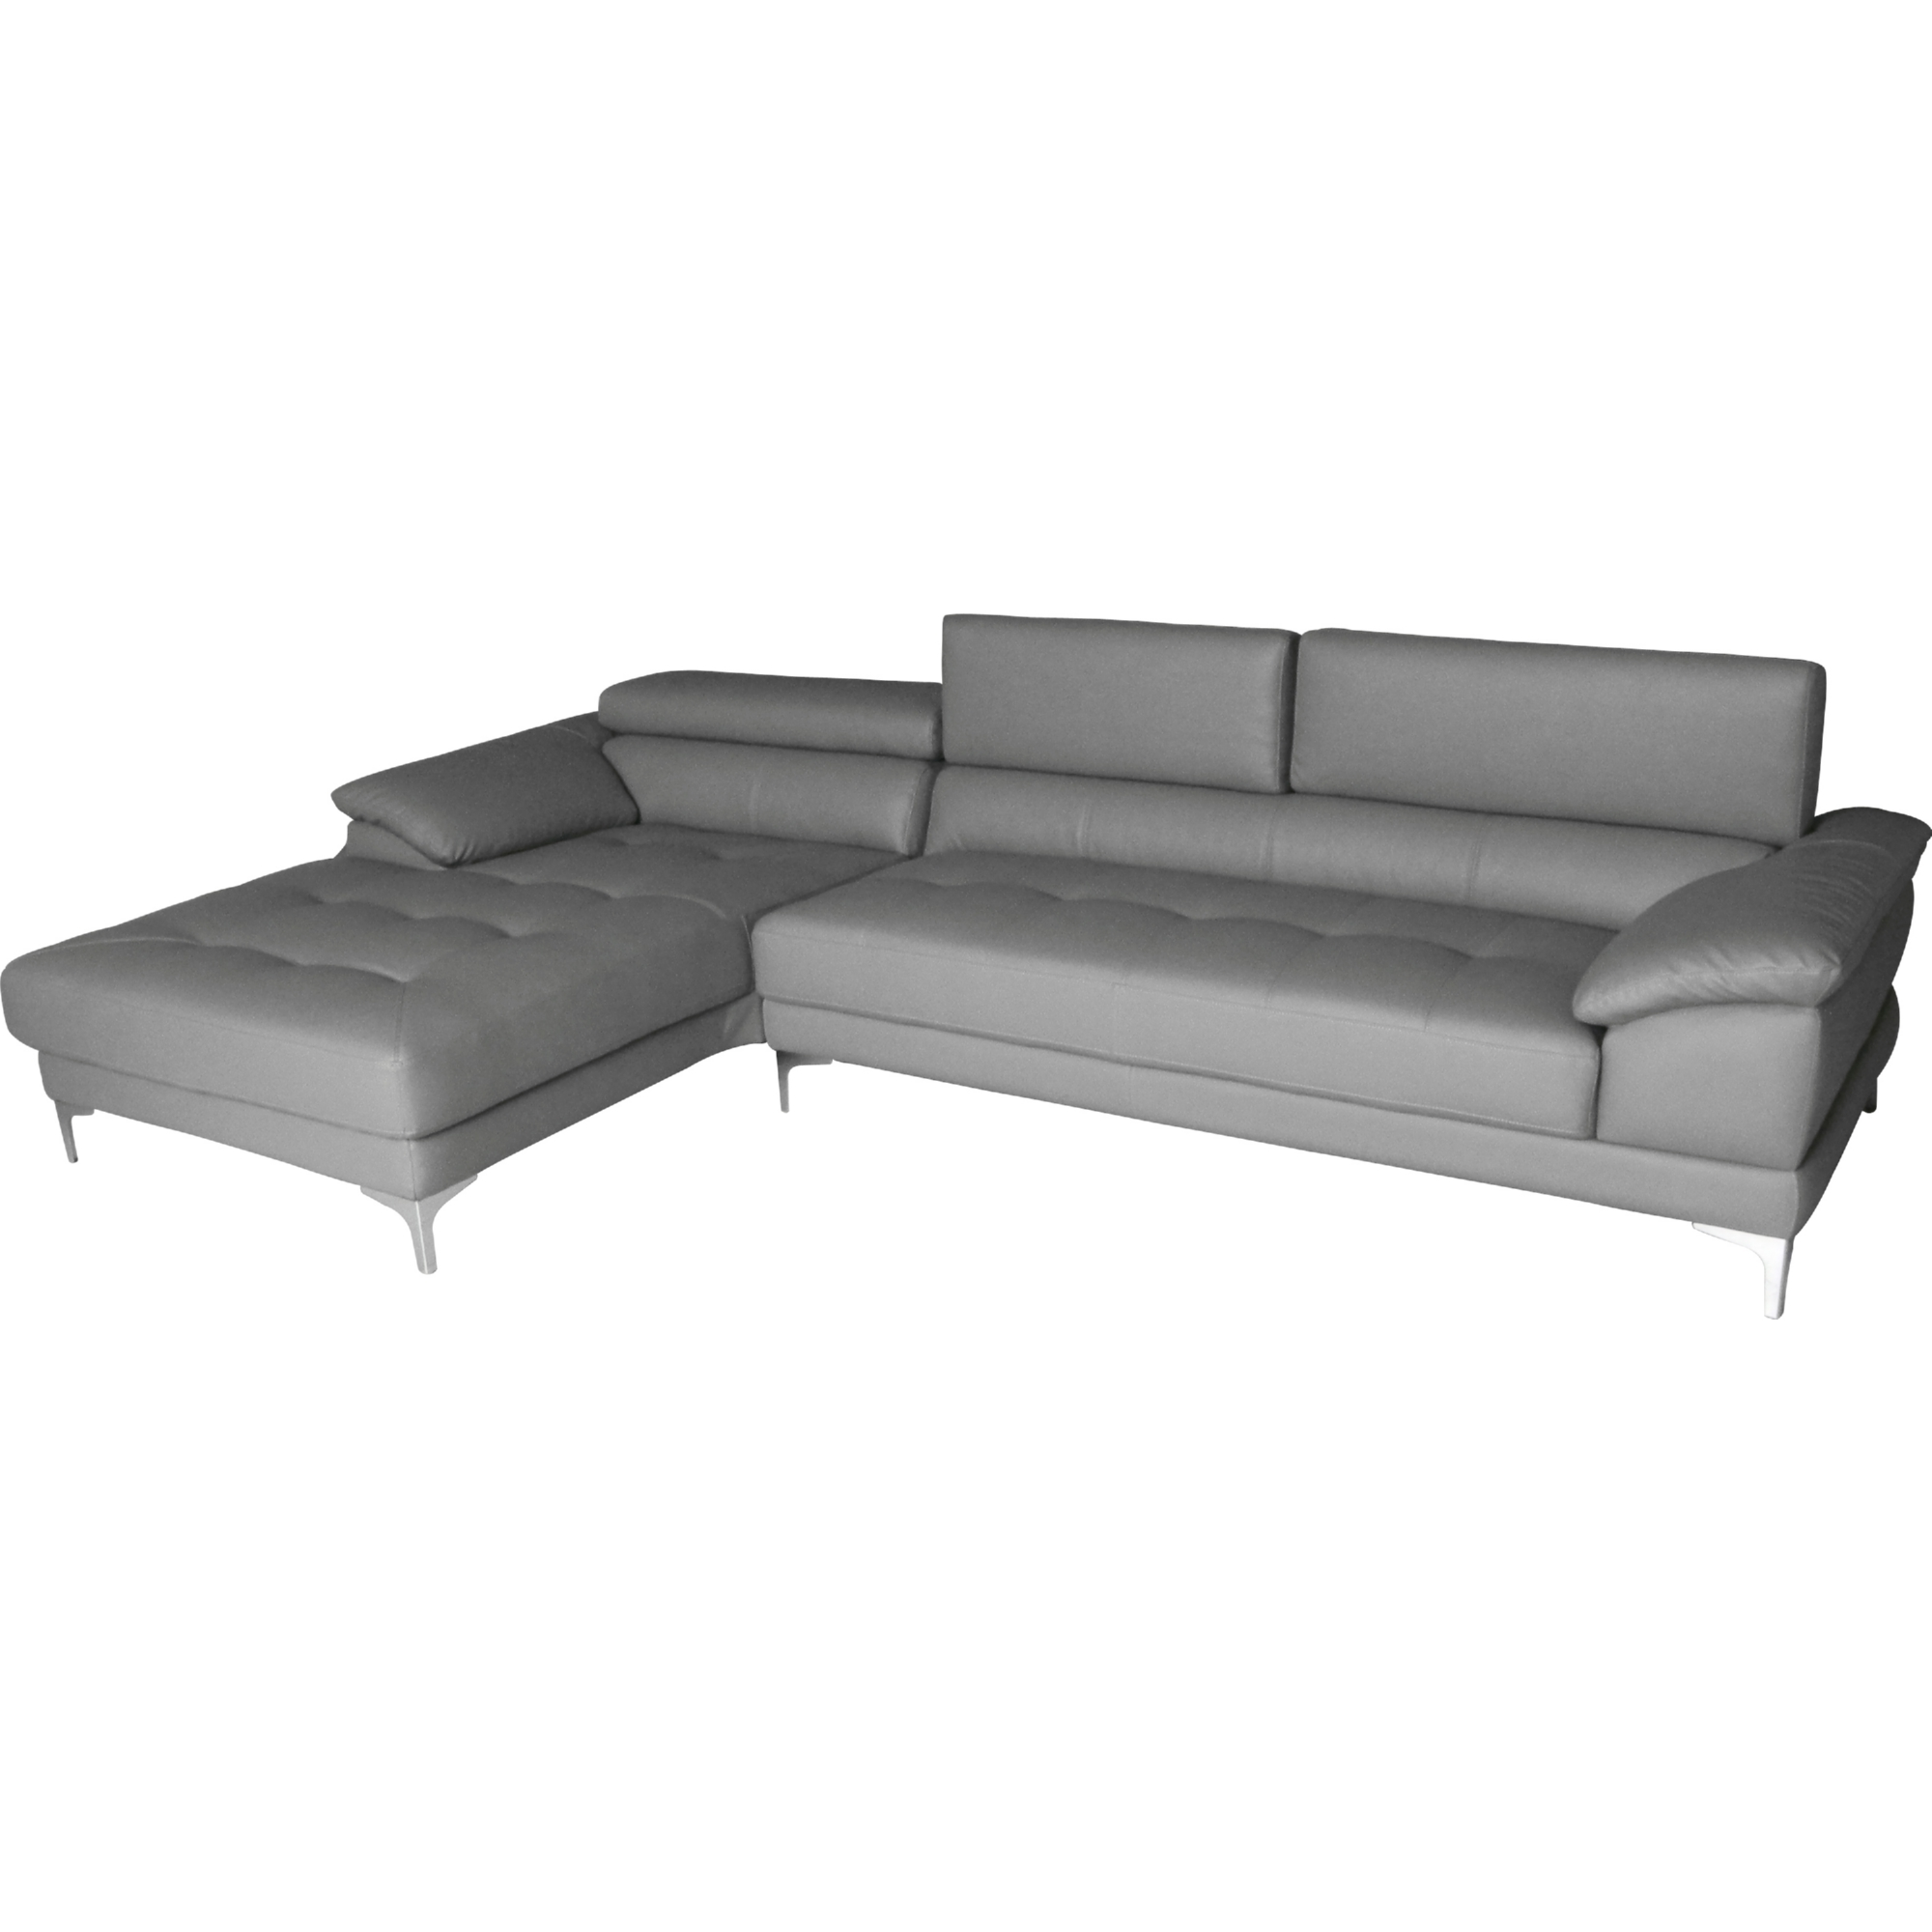 Whiteline Imports SL1342P GRY Monroe Sectional Sofa w Chaise on